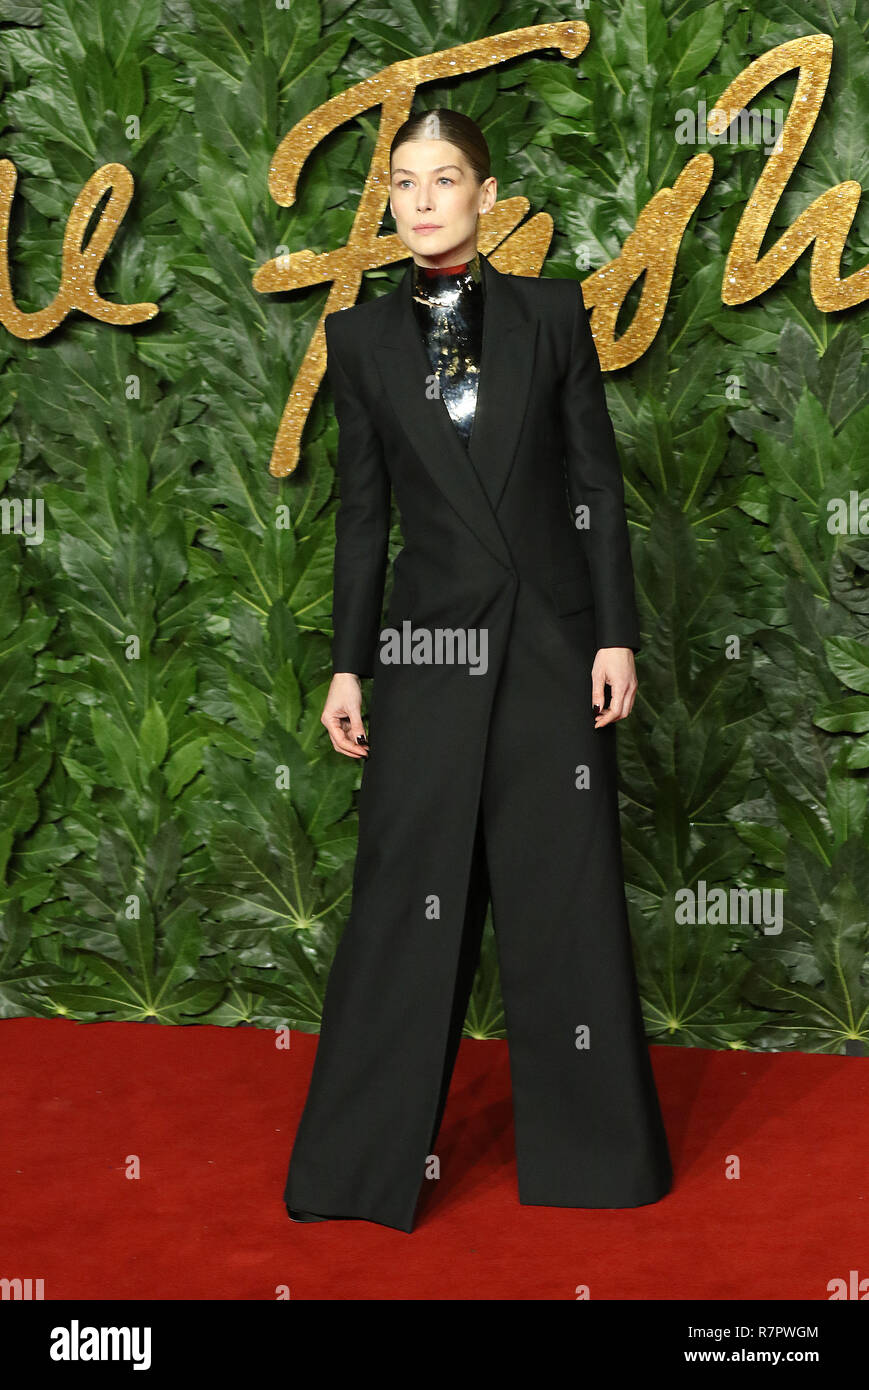 Rosamund Pike, Royal Albert Hall, London, UK. 10th Dec 2018. The Fashion Awards 2018, Royal Albert Hall, Kensington Gore, London, UK, 10 December 2018, Photo by Richard Goldschmidt Credit: Rich Gold/Alamy Live News Stock Photo